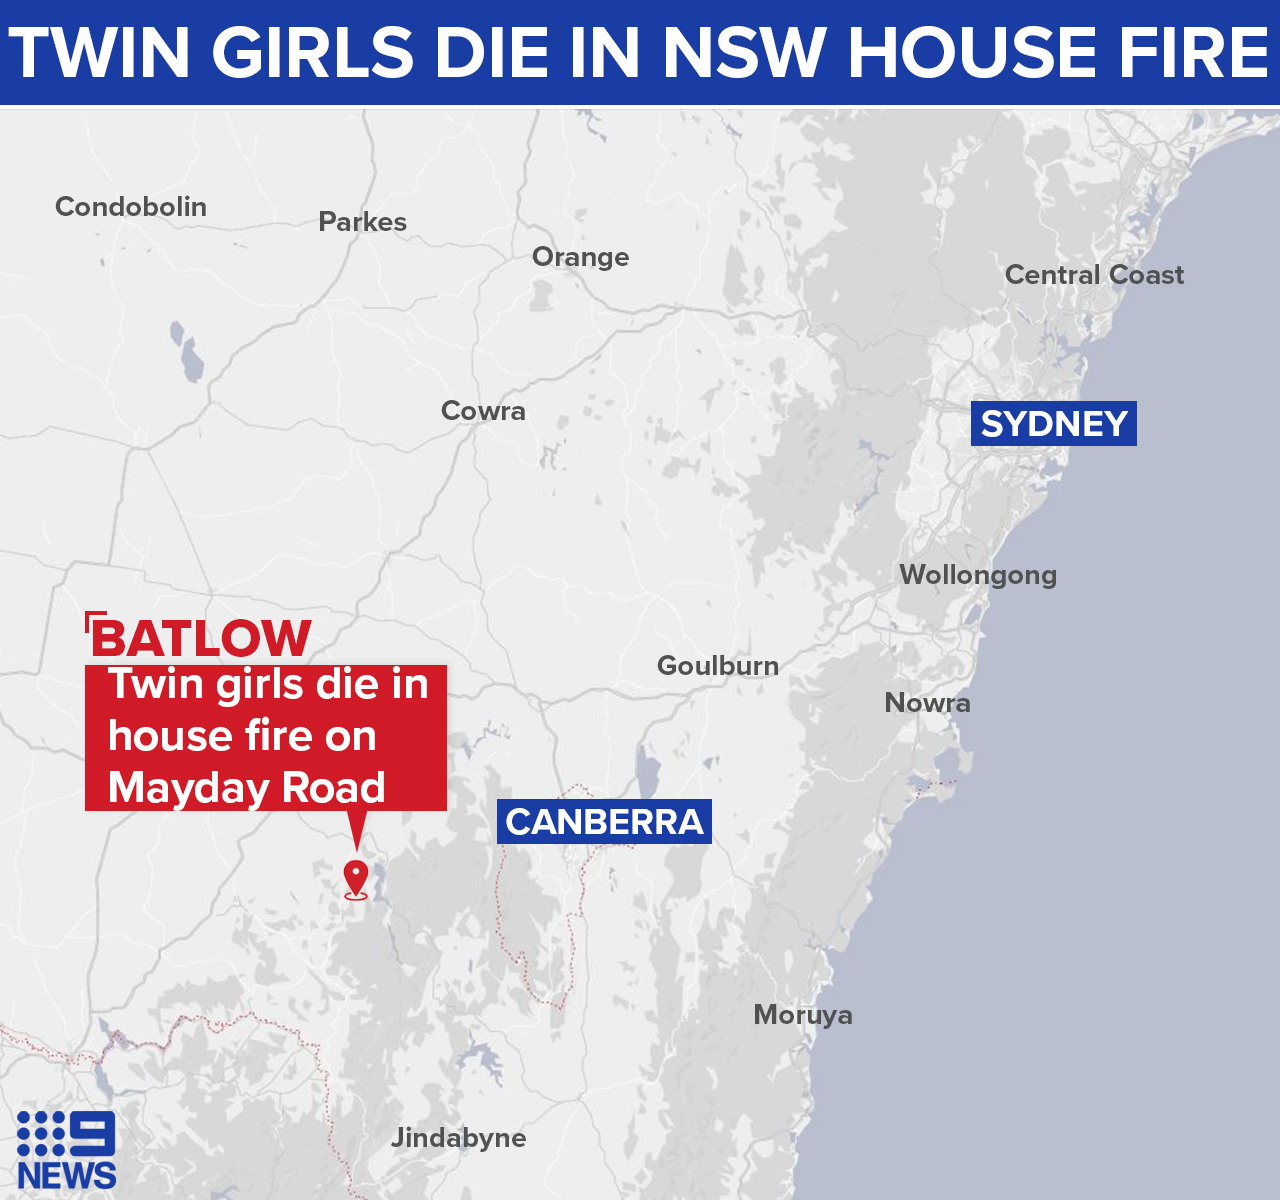 Batlow is on the New South Wales south-west slopes.